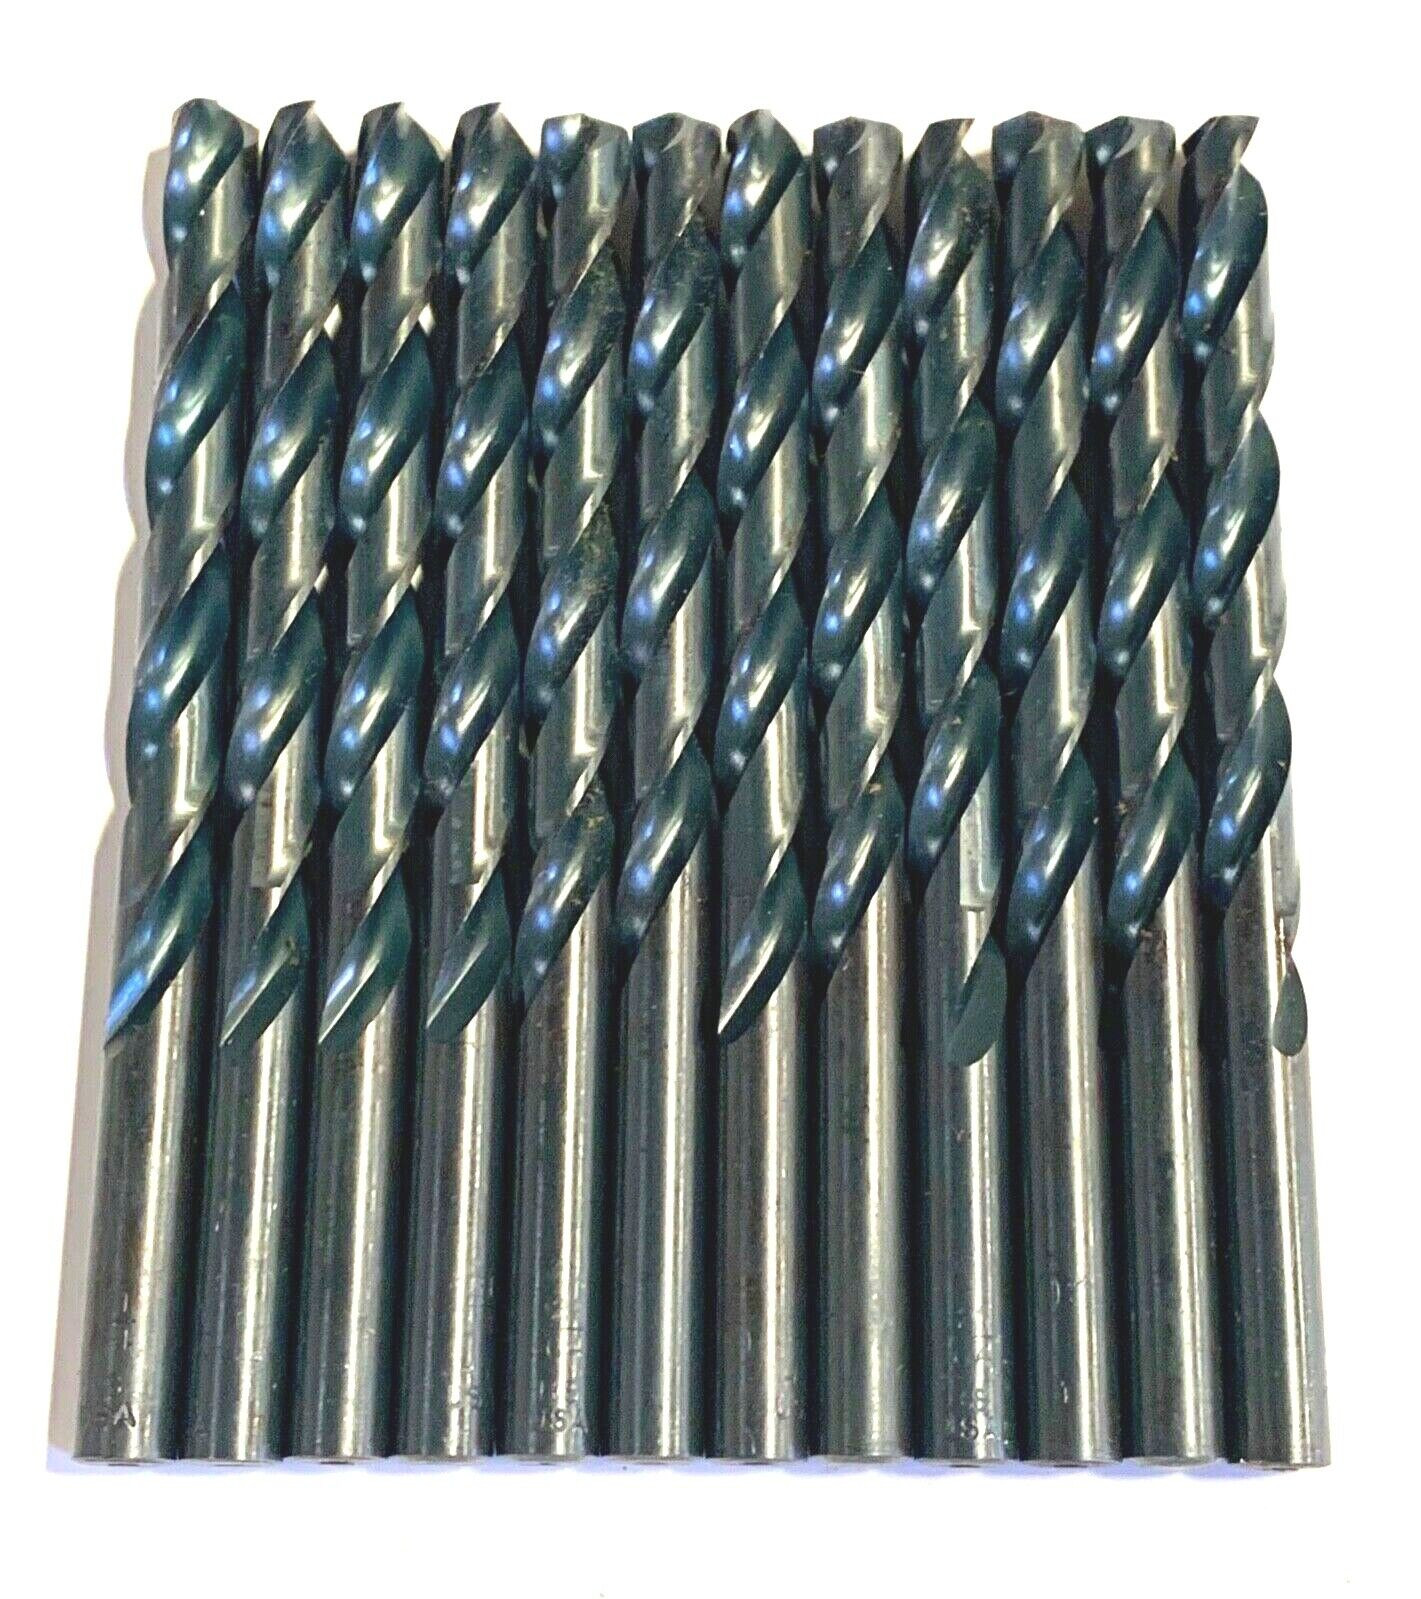 #14 MORSE HEAVY DUTY SCREW MACHINE DRILL BIT PACK OF 12